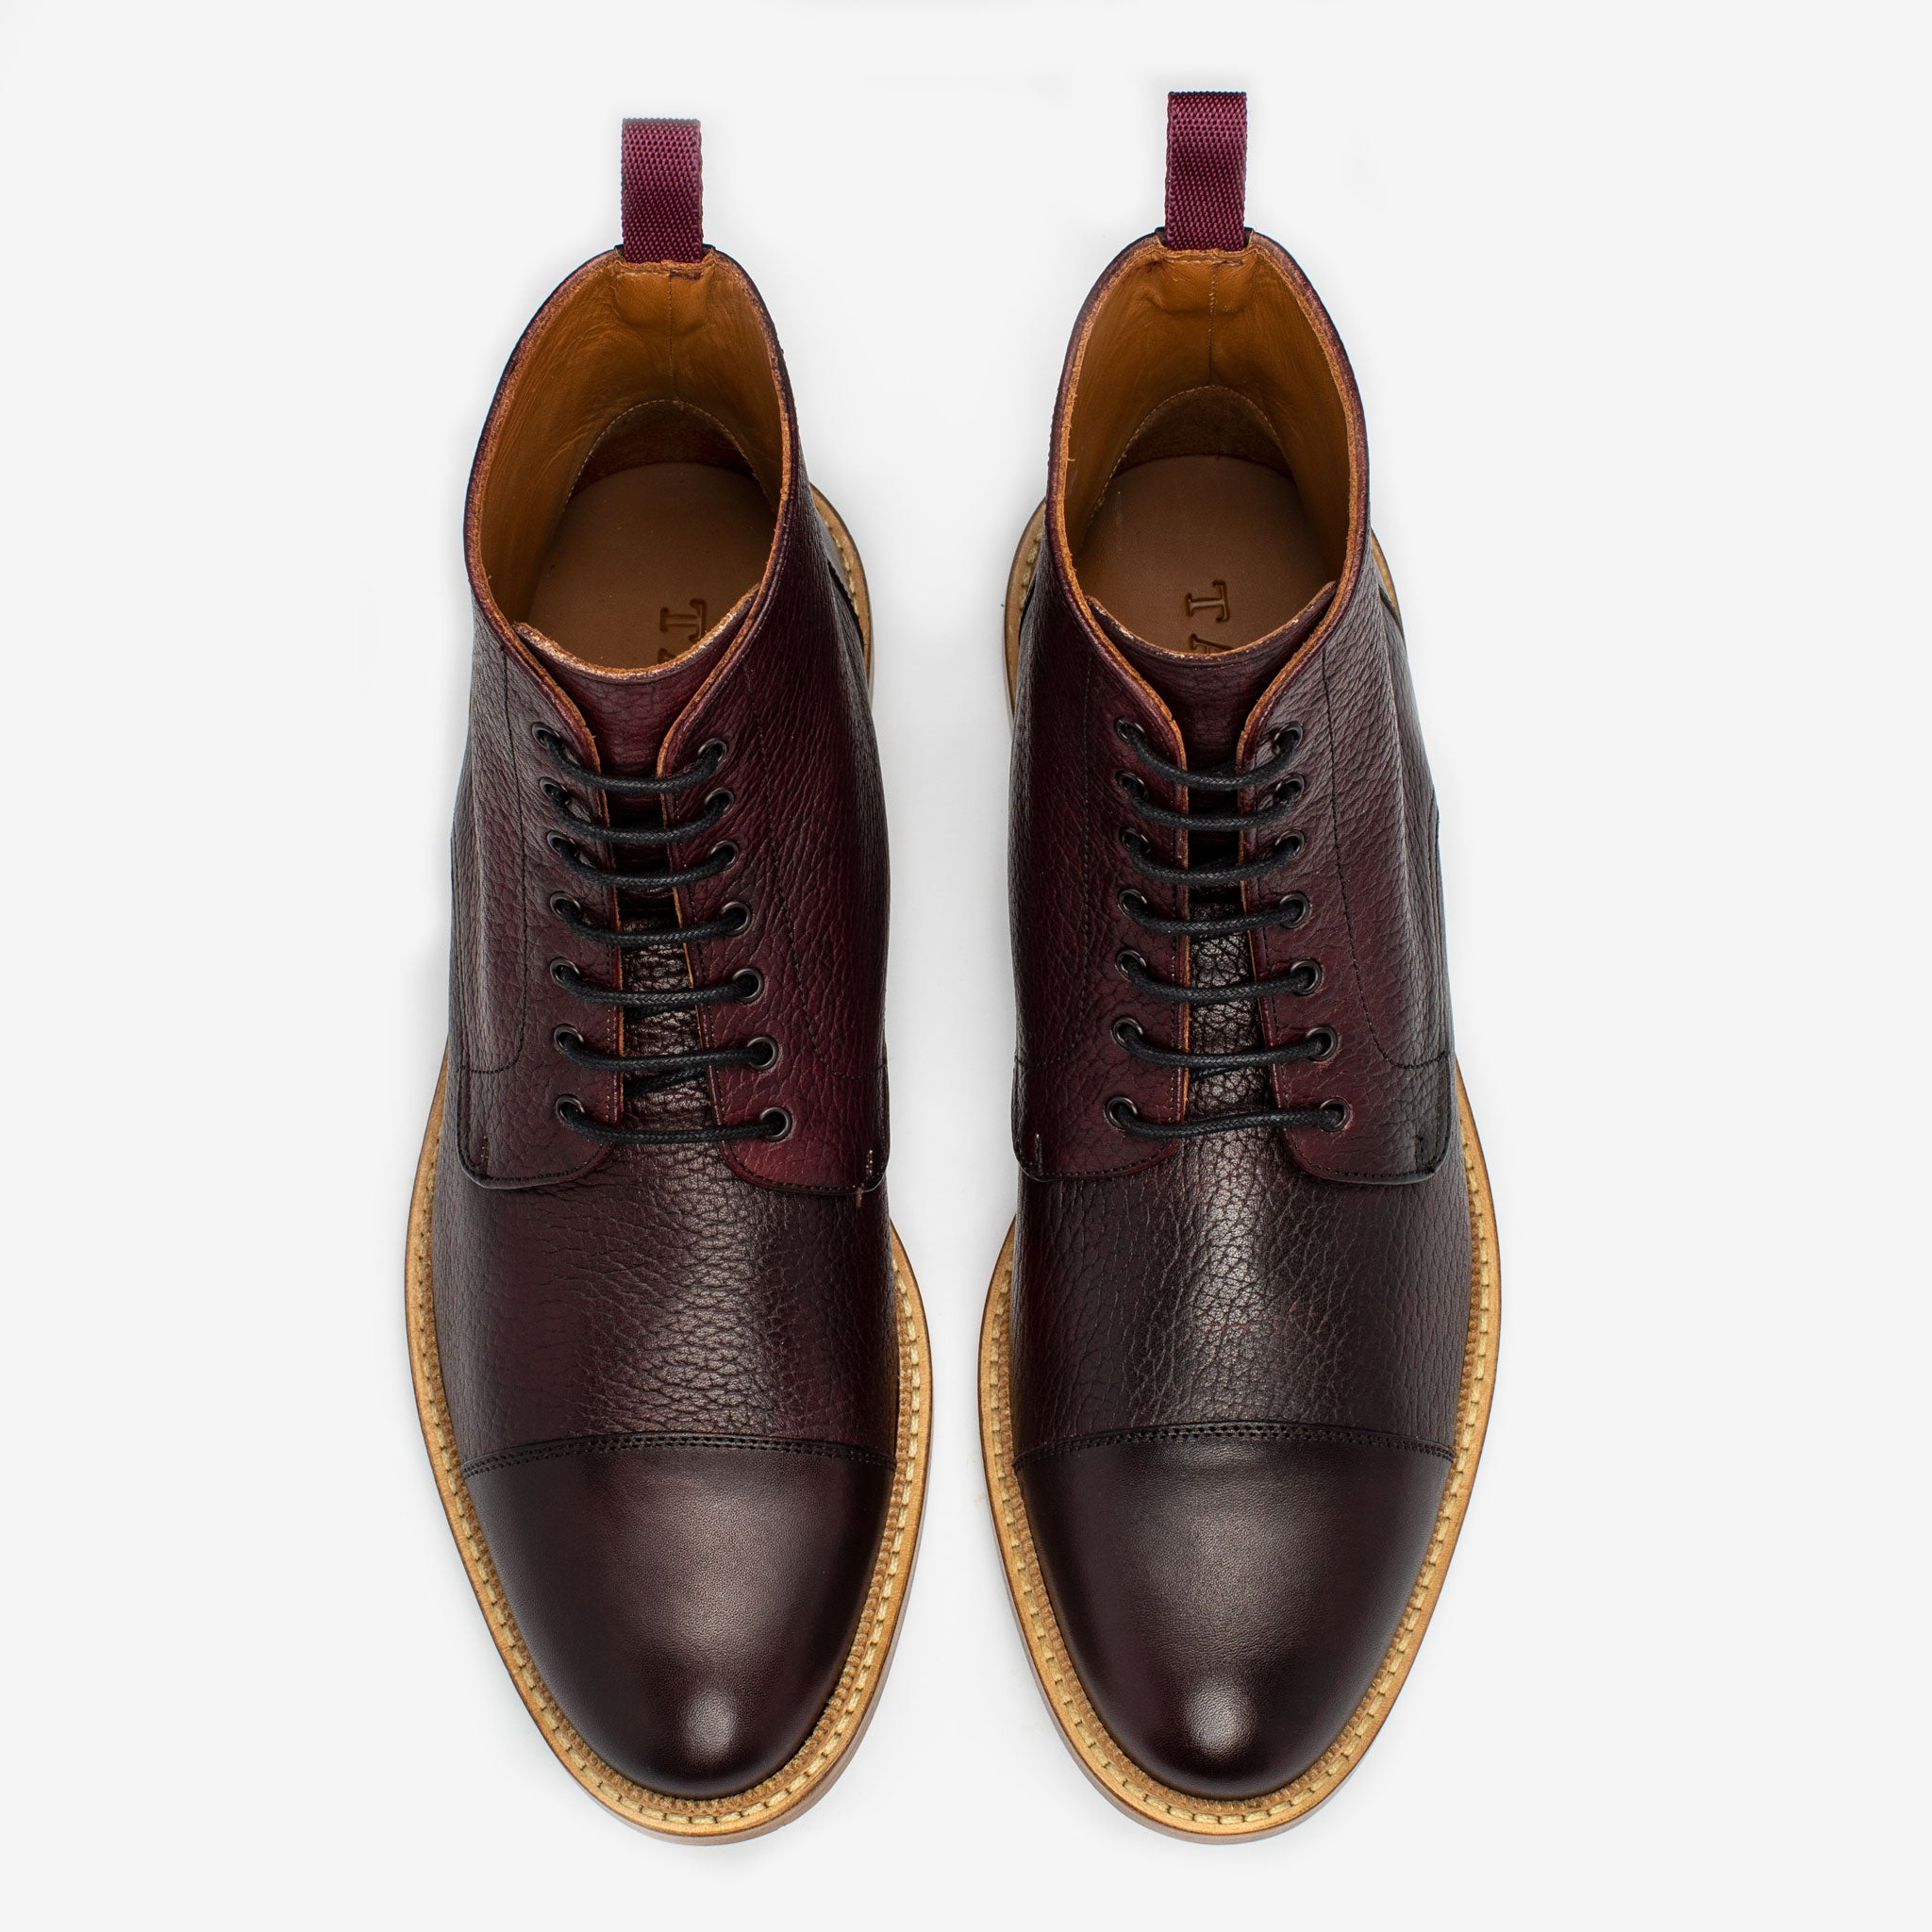 The Rome Boot in Oxblood